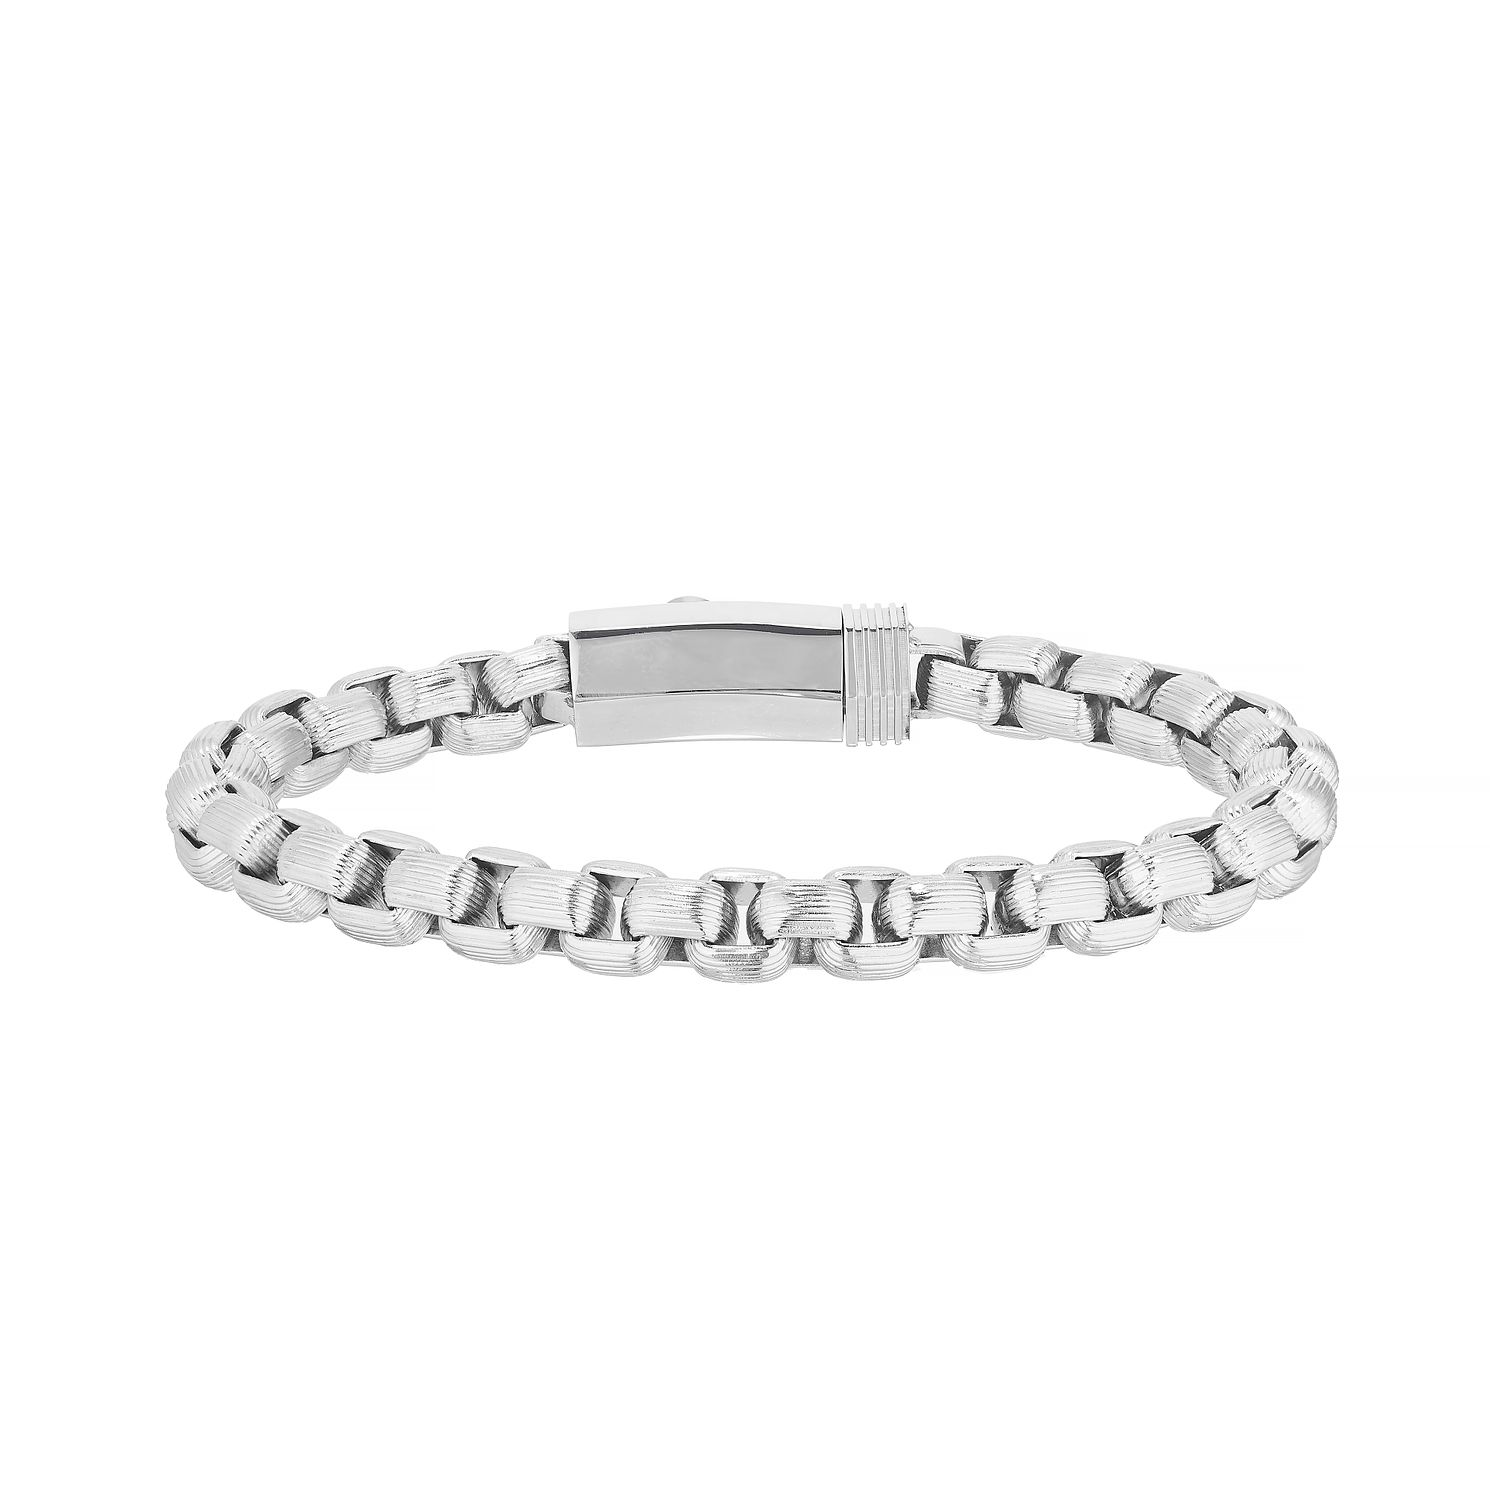 Esquire Stainless Steel Box Chain Bracelet - Product number 4977165